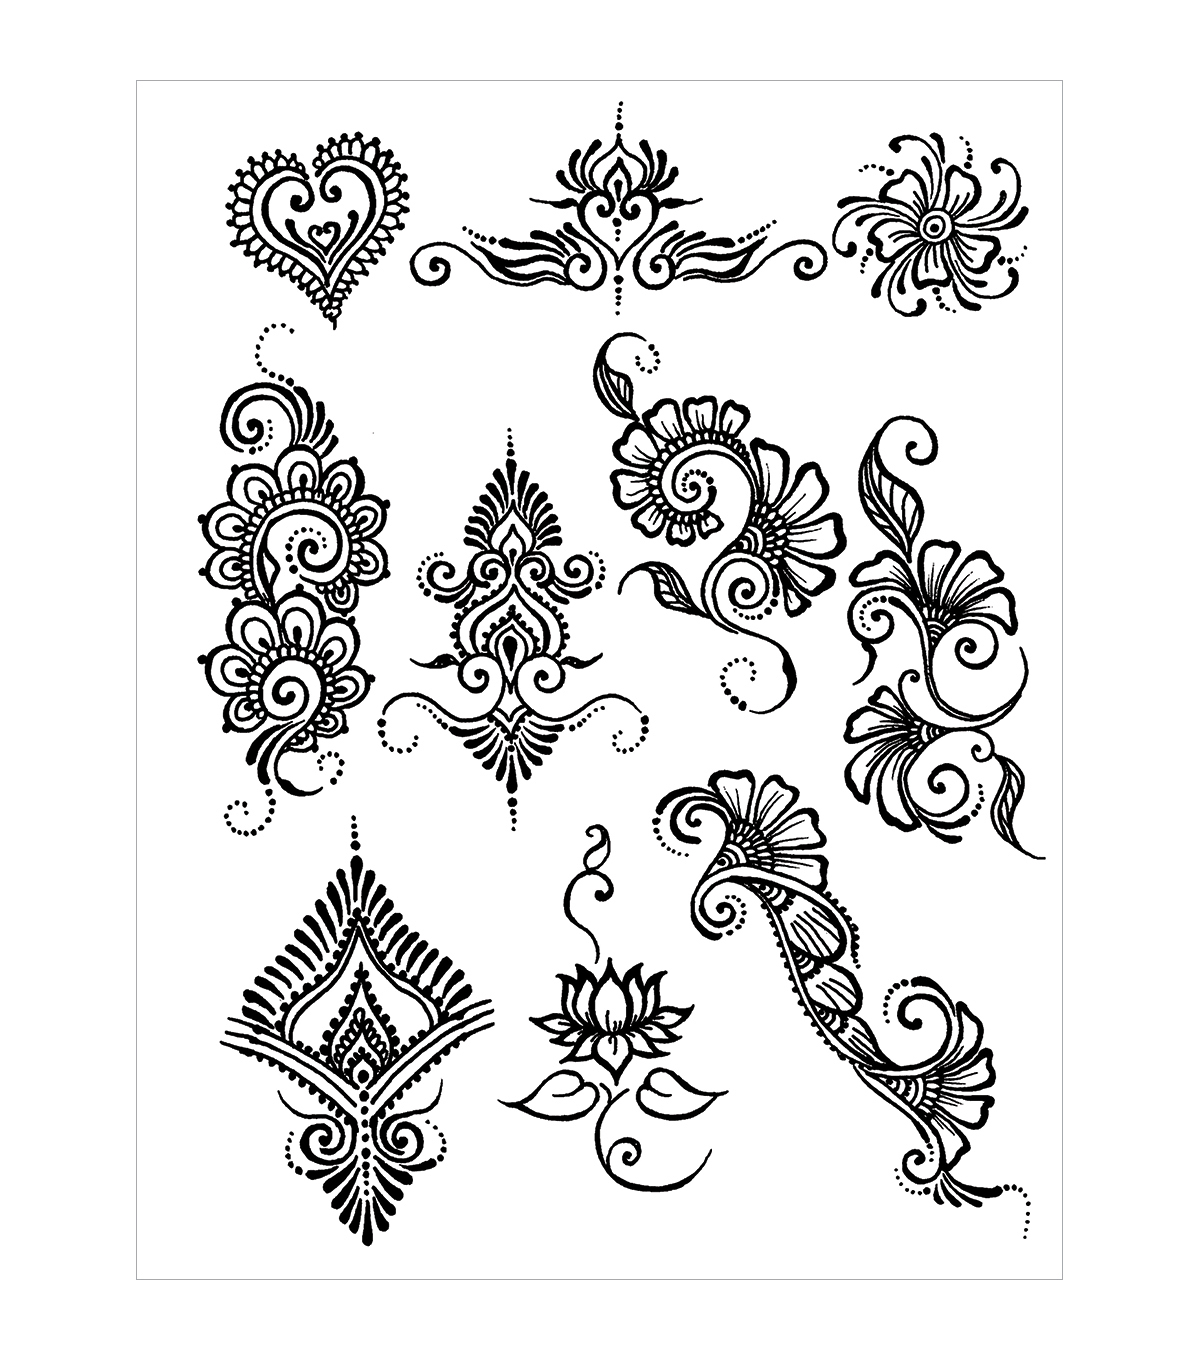 Easy Mehndi Patterns To Copy : Akyio henna stencils pack earth designs joann